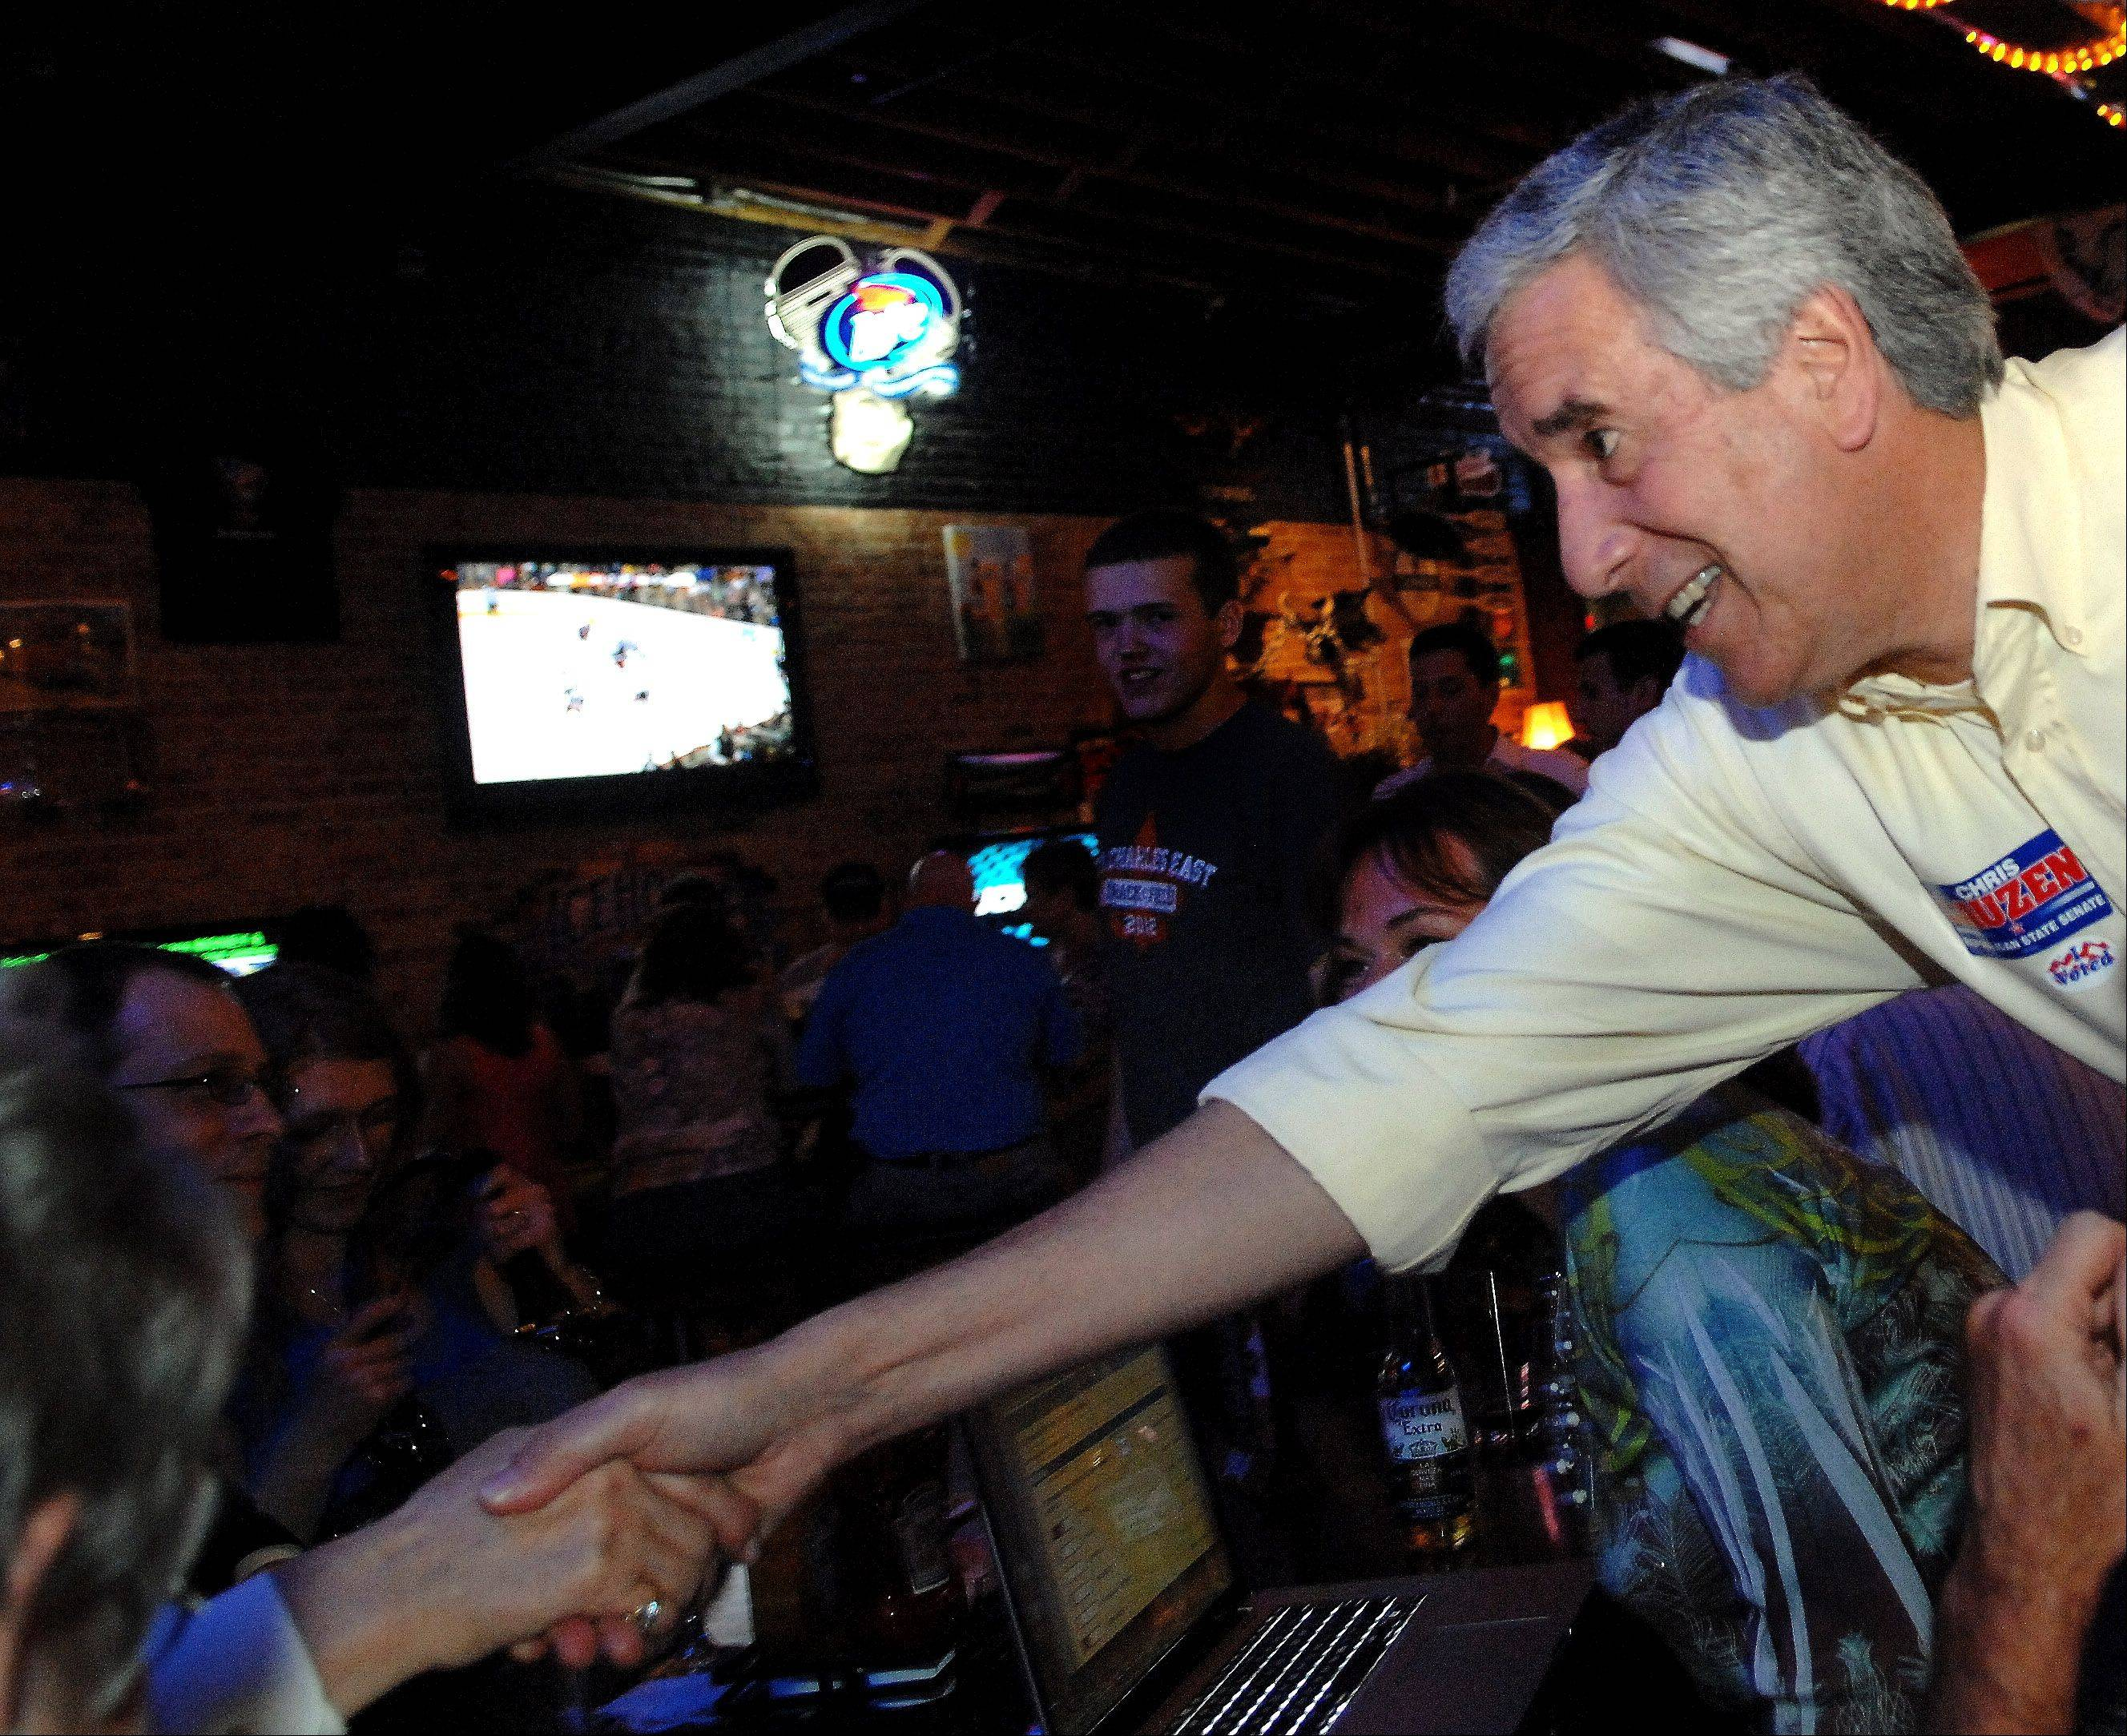 Republican candidate for Kane County Board Chairman Chris Lauzen shakes hands with supporters at Alley 64 in St. Charles.